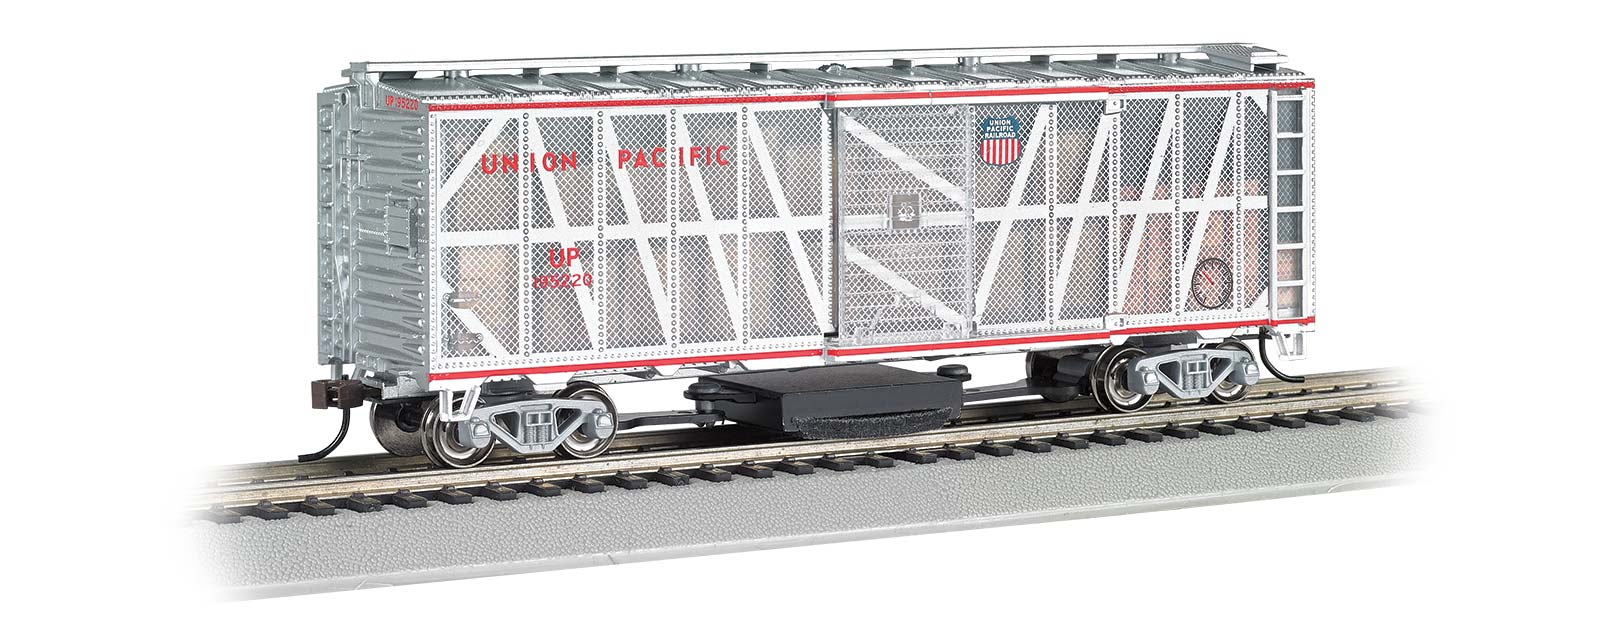 Bachmann ho scale track cleaning 40 box car union pacific list price 5200 biocorpaavc